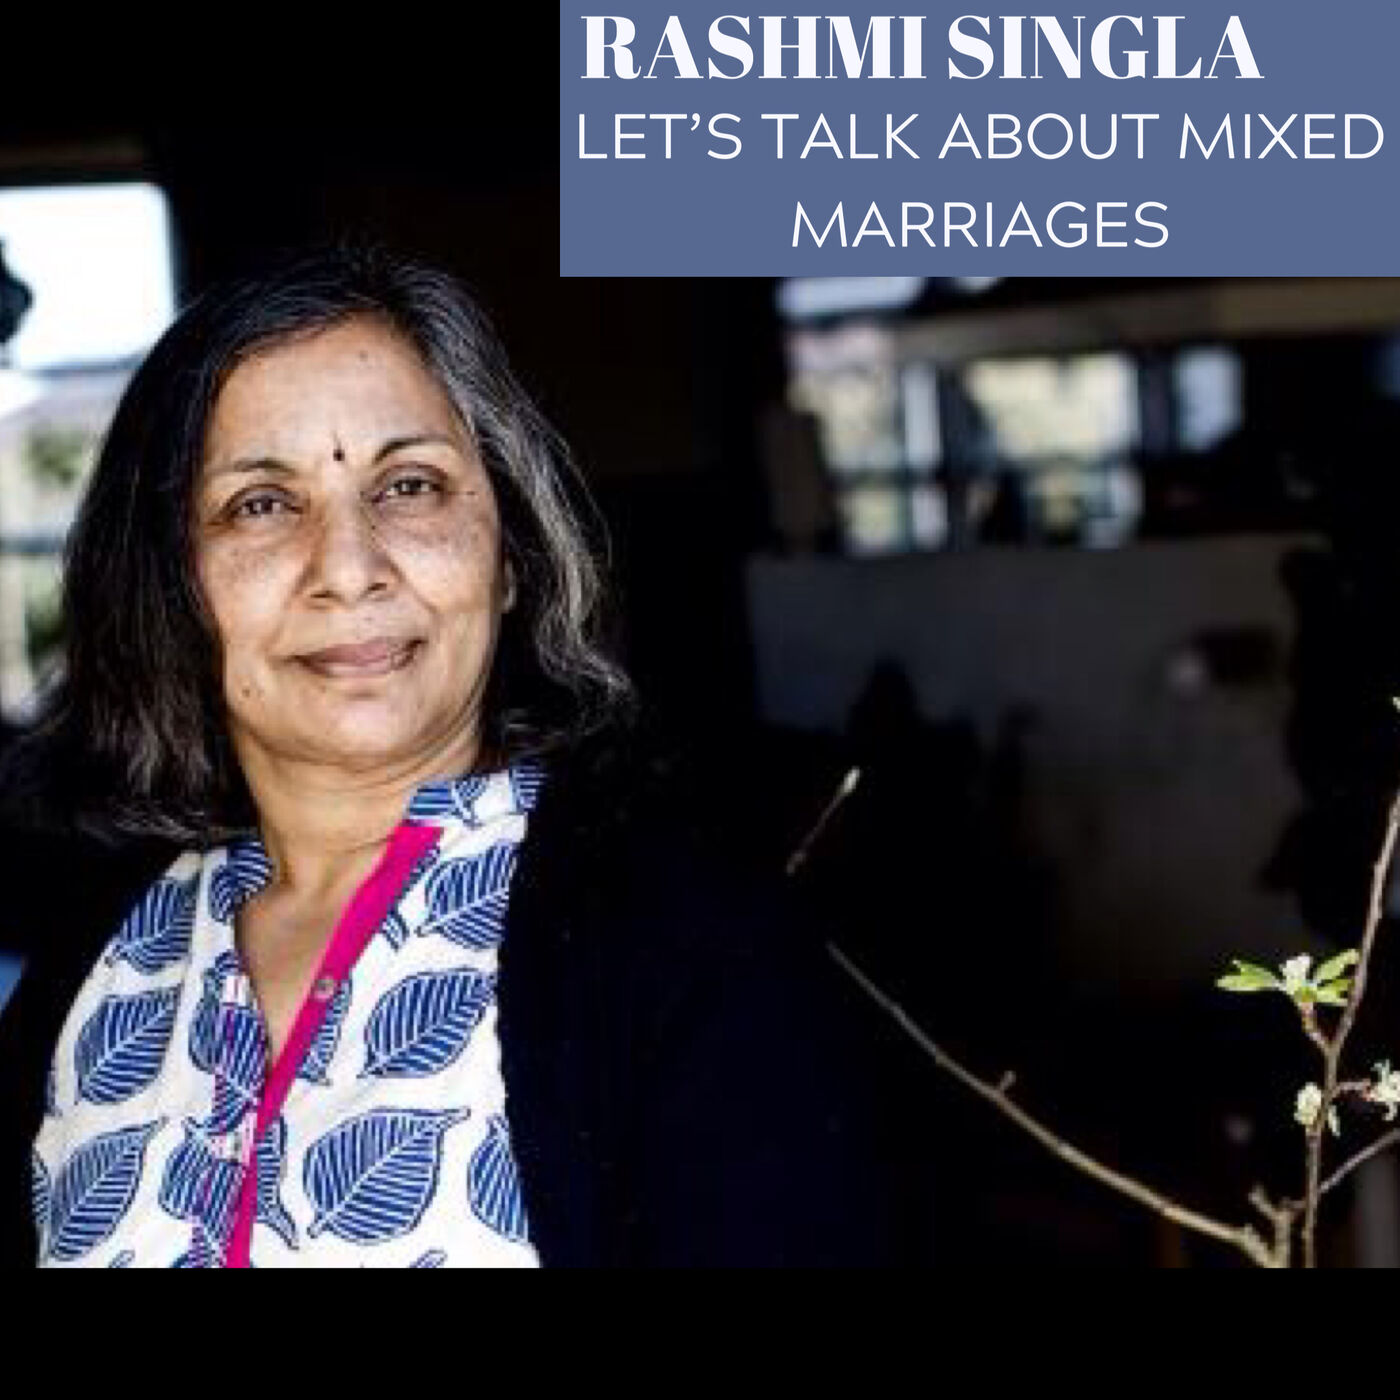 About mixed marraiges with Rashmi Singla